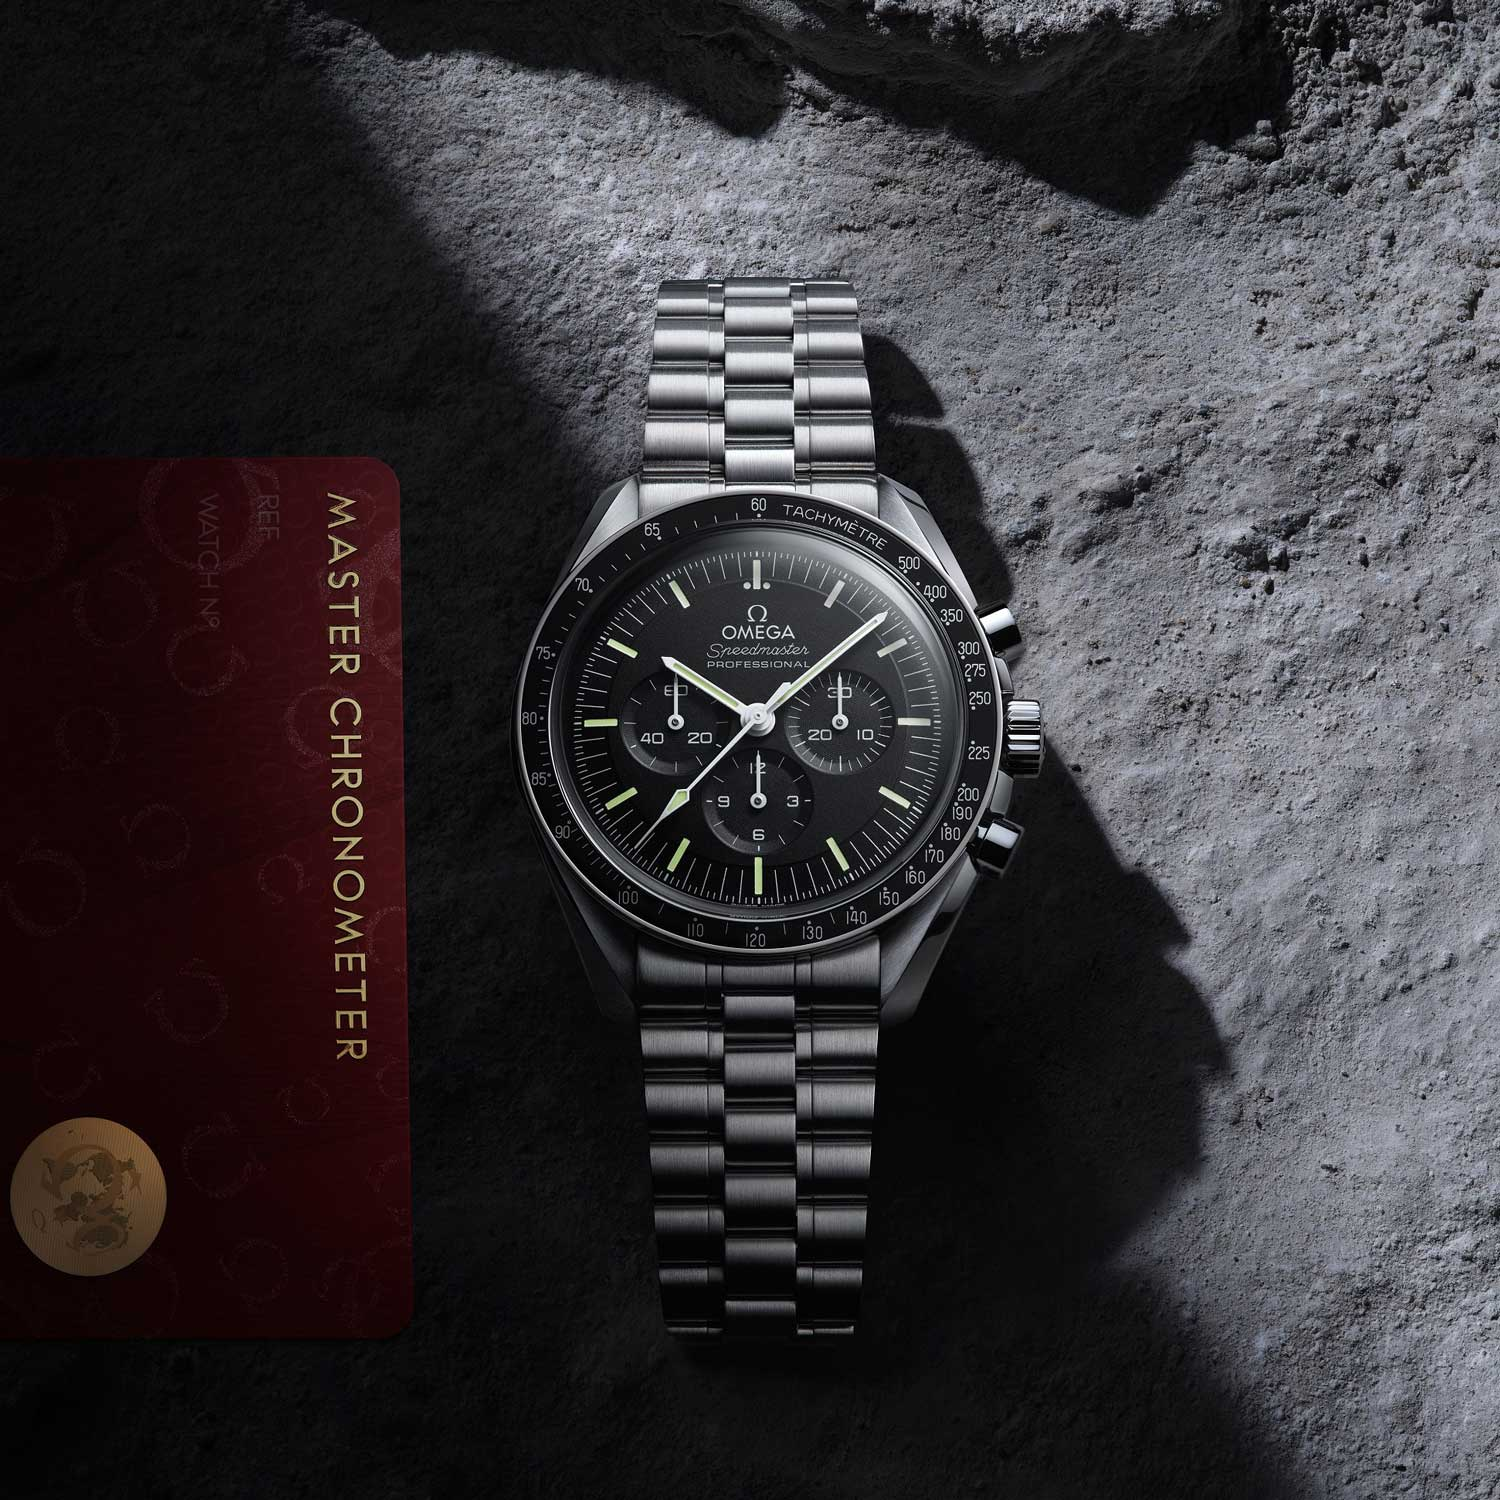 All of the watches from the 2021 Speedmaster collection are Master Chronometer Certified and backed by Omega's 5 year warranty